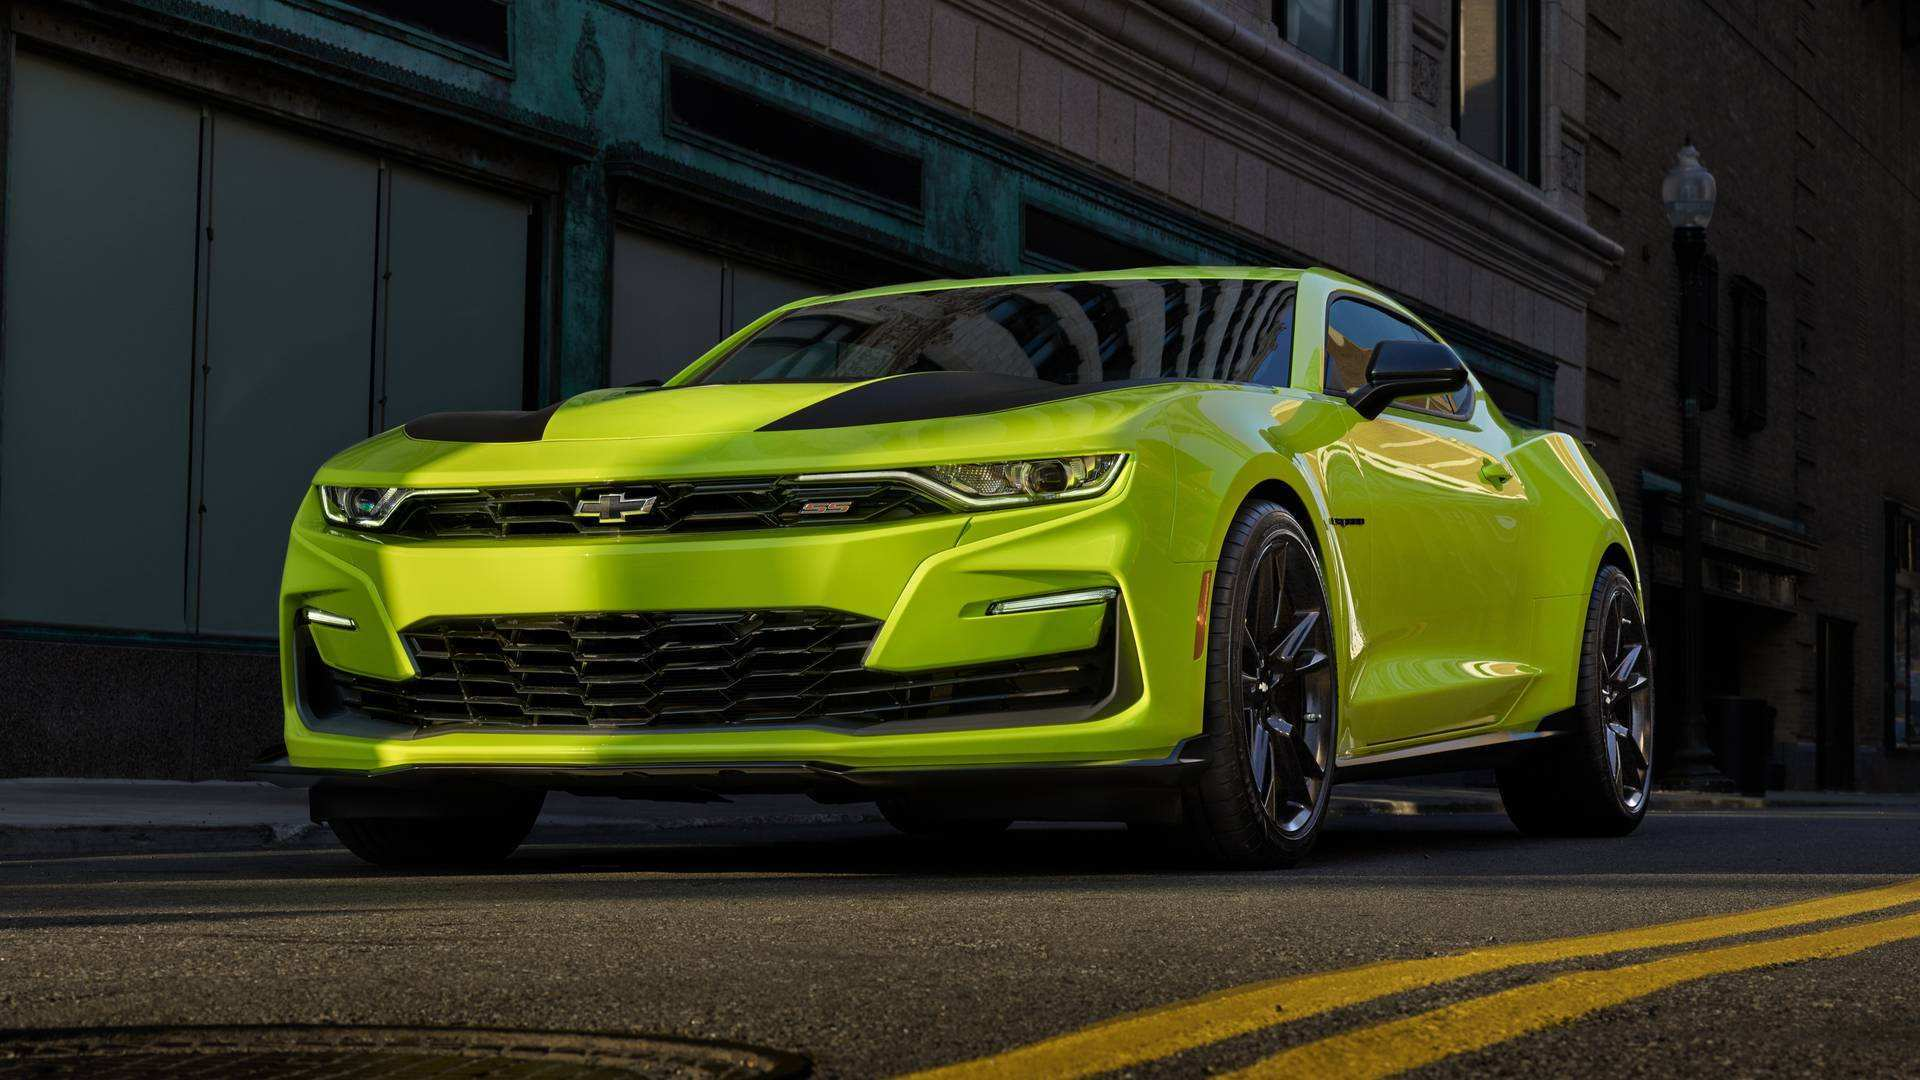 87 All New 2020 Chevrolet Camaro Zl1 Price And Release Date